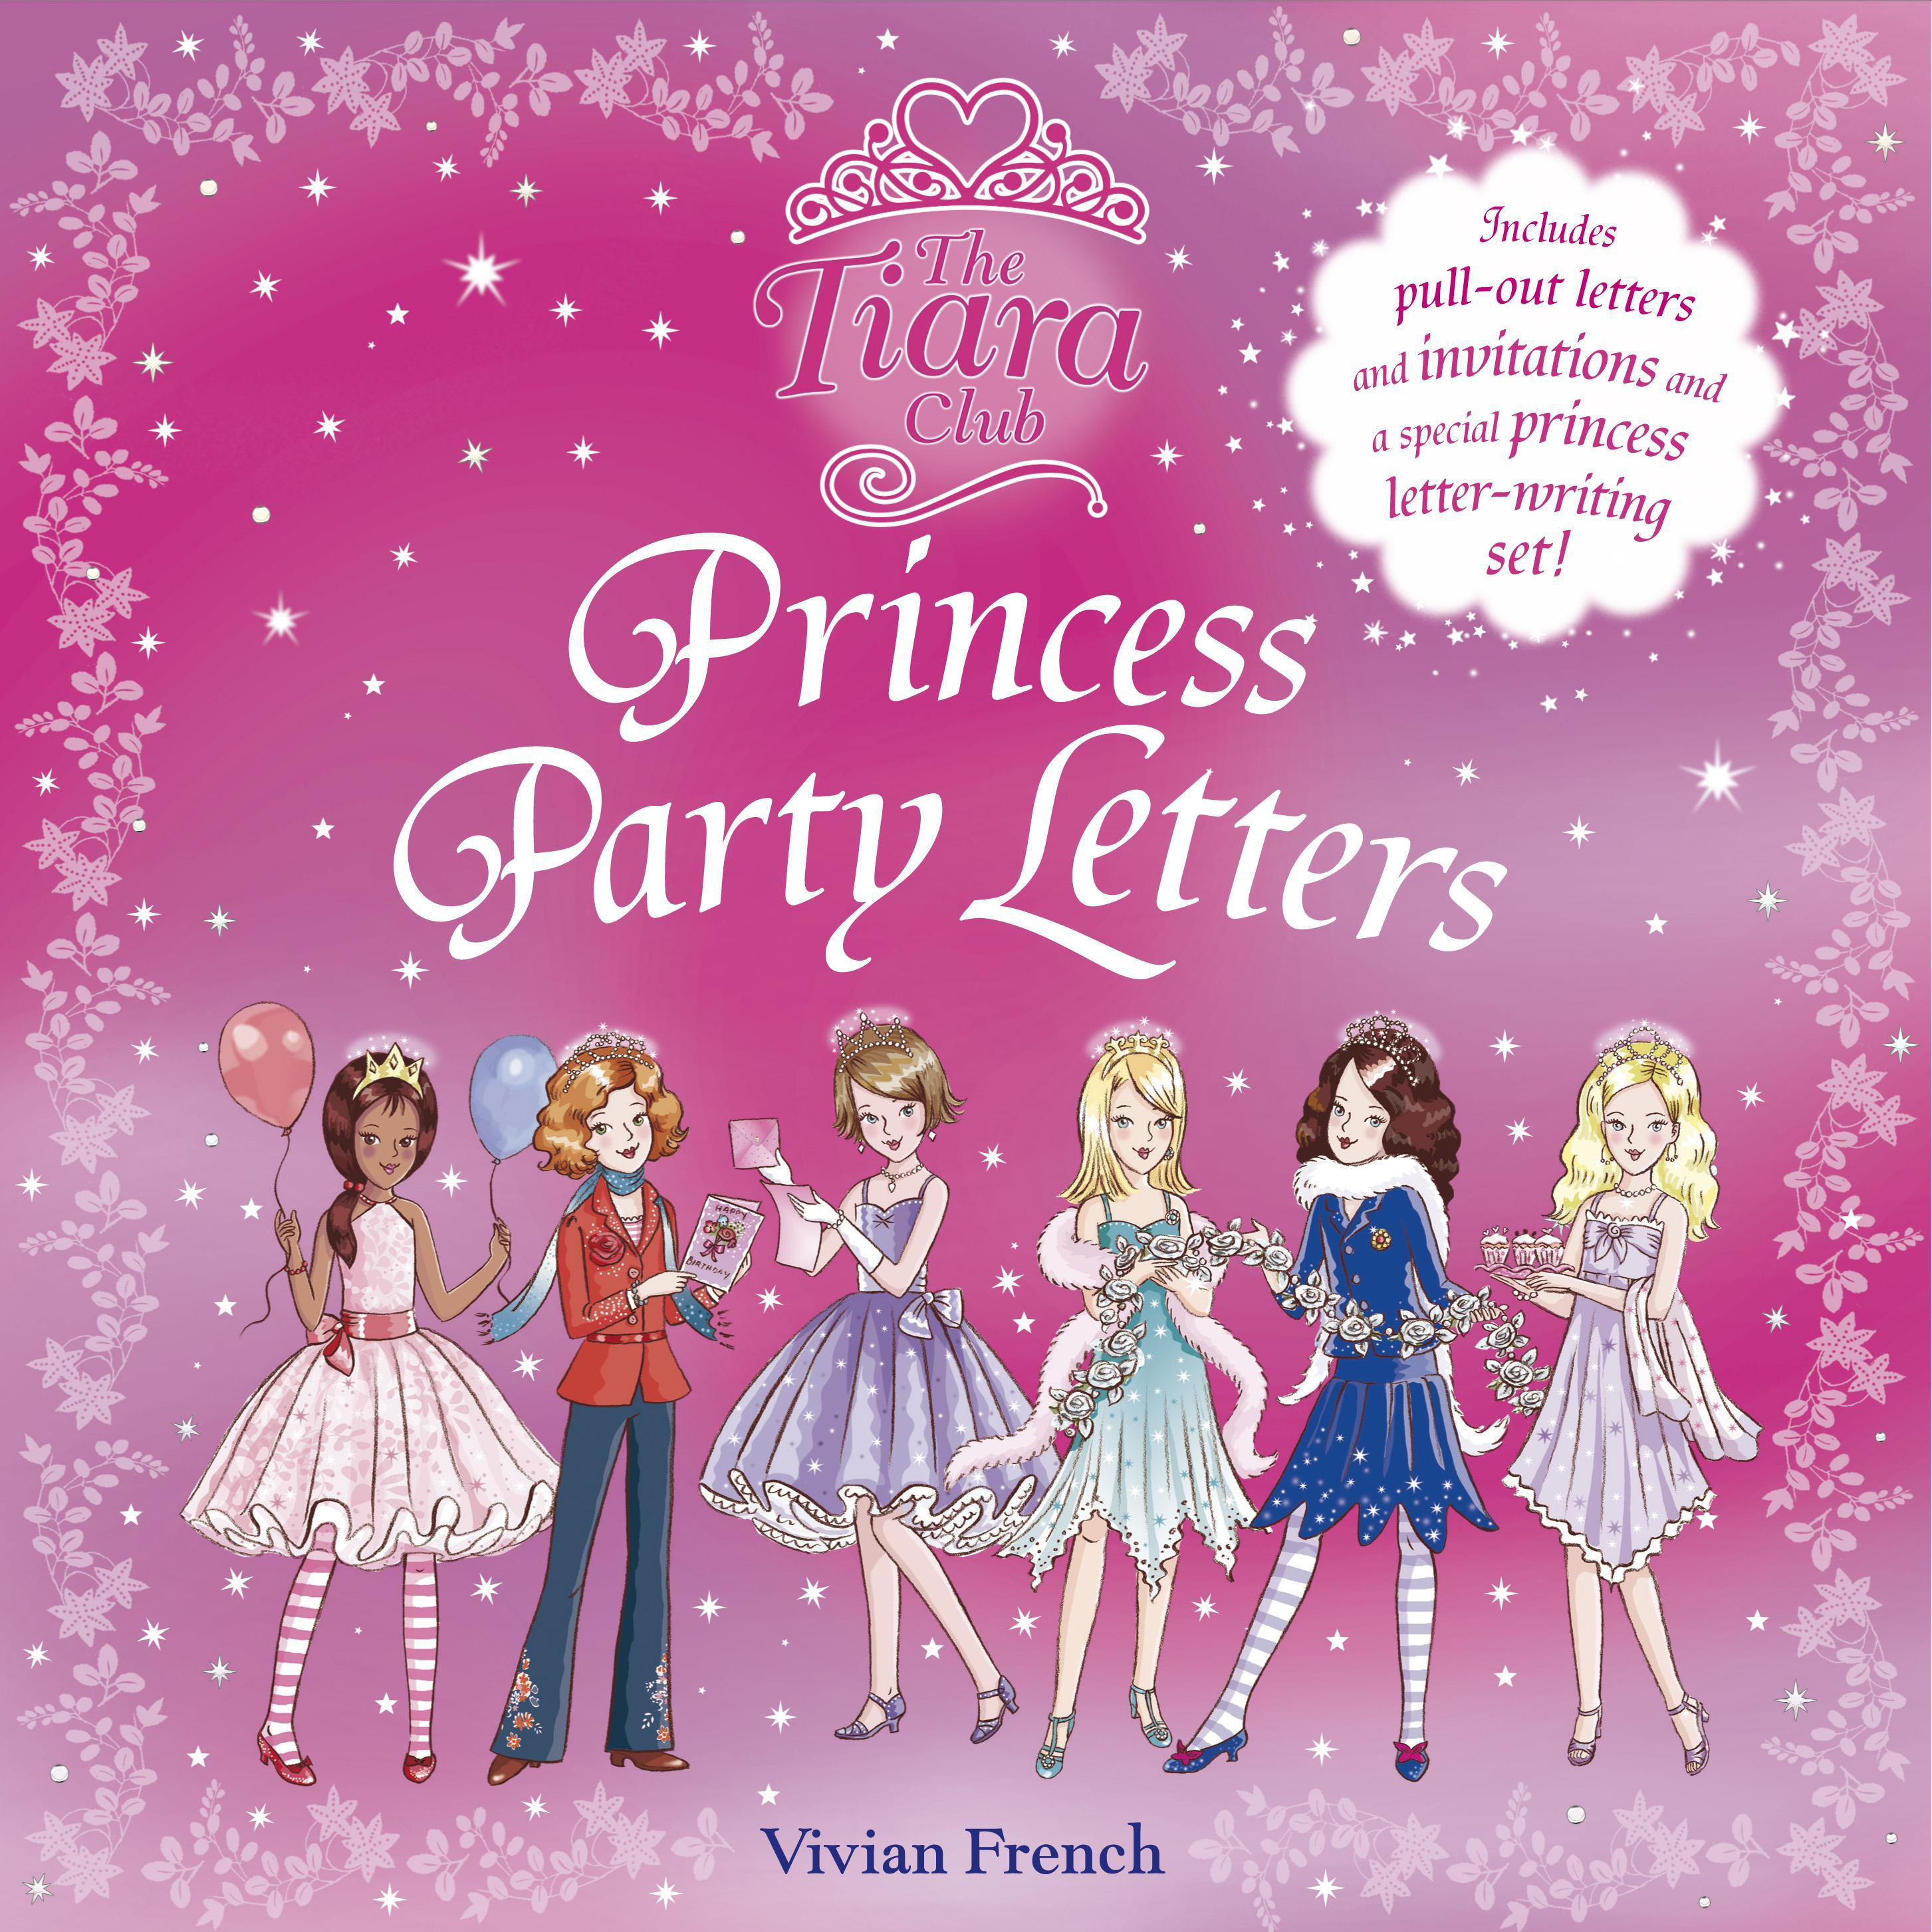 The tiara club princess party letters by vivian french books the tiara club for national curriculum key stage 1 interest age from c 5 years fiction fantasy magical realism childrens teenage school stories stopboris Choice Image